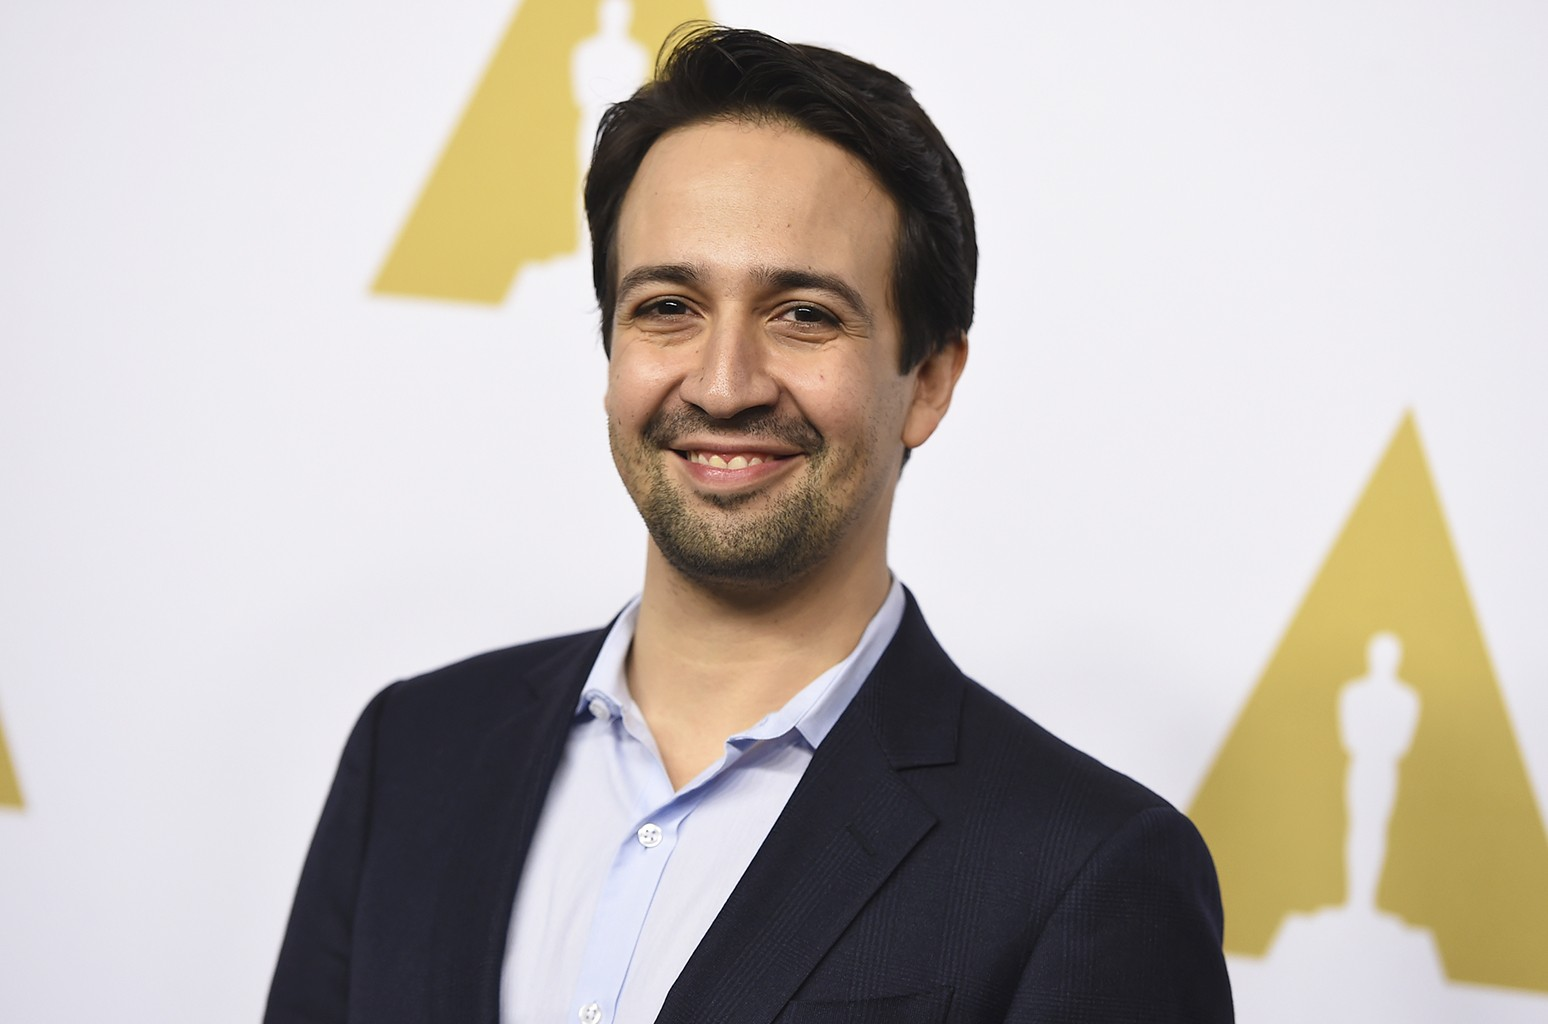 Lin-Manuel Miranda arrives at the 89th Academy Awards Nominees Luncheon at The Beverly Hilton Hotel on Feb. 6, 2017 in Beverly Hills, Calif.